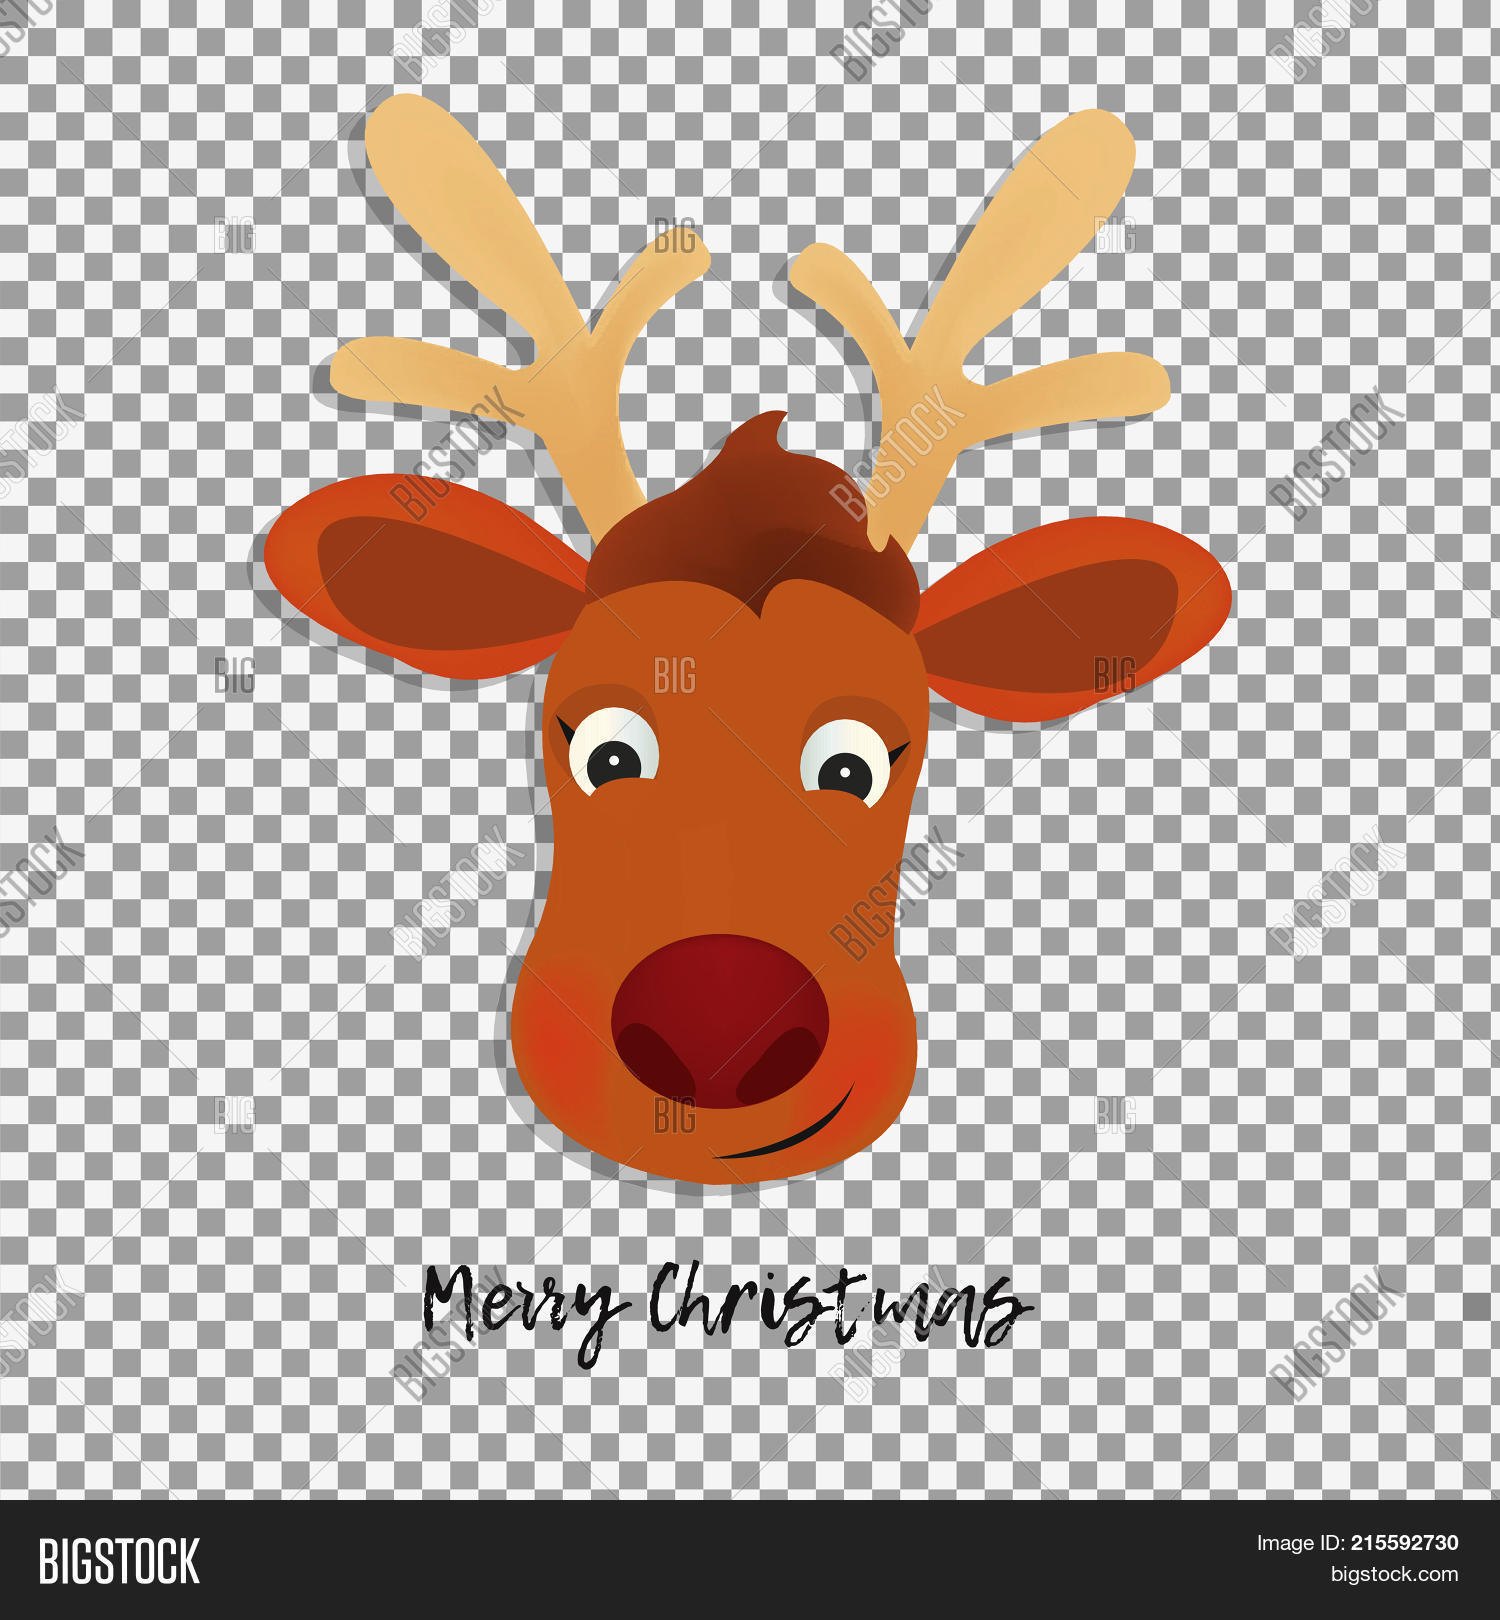 Christmas Deer Cartoon Head On Transparent Background Cute Santa Helper Character